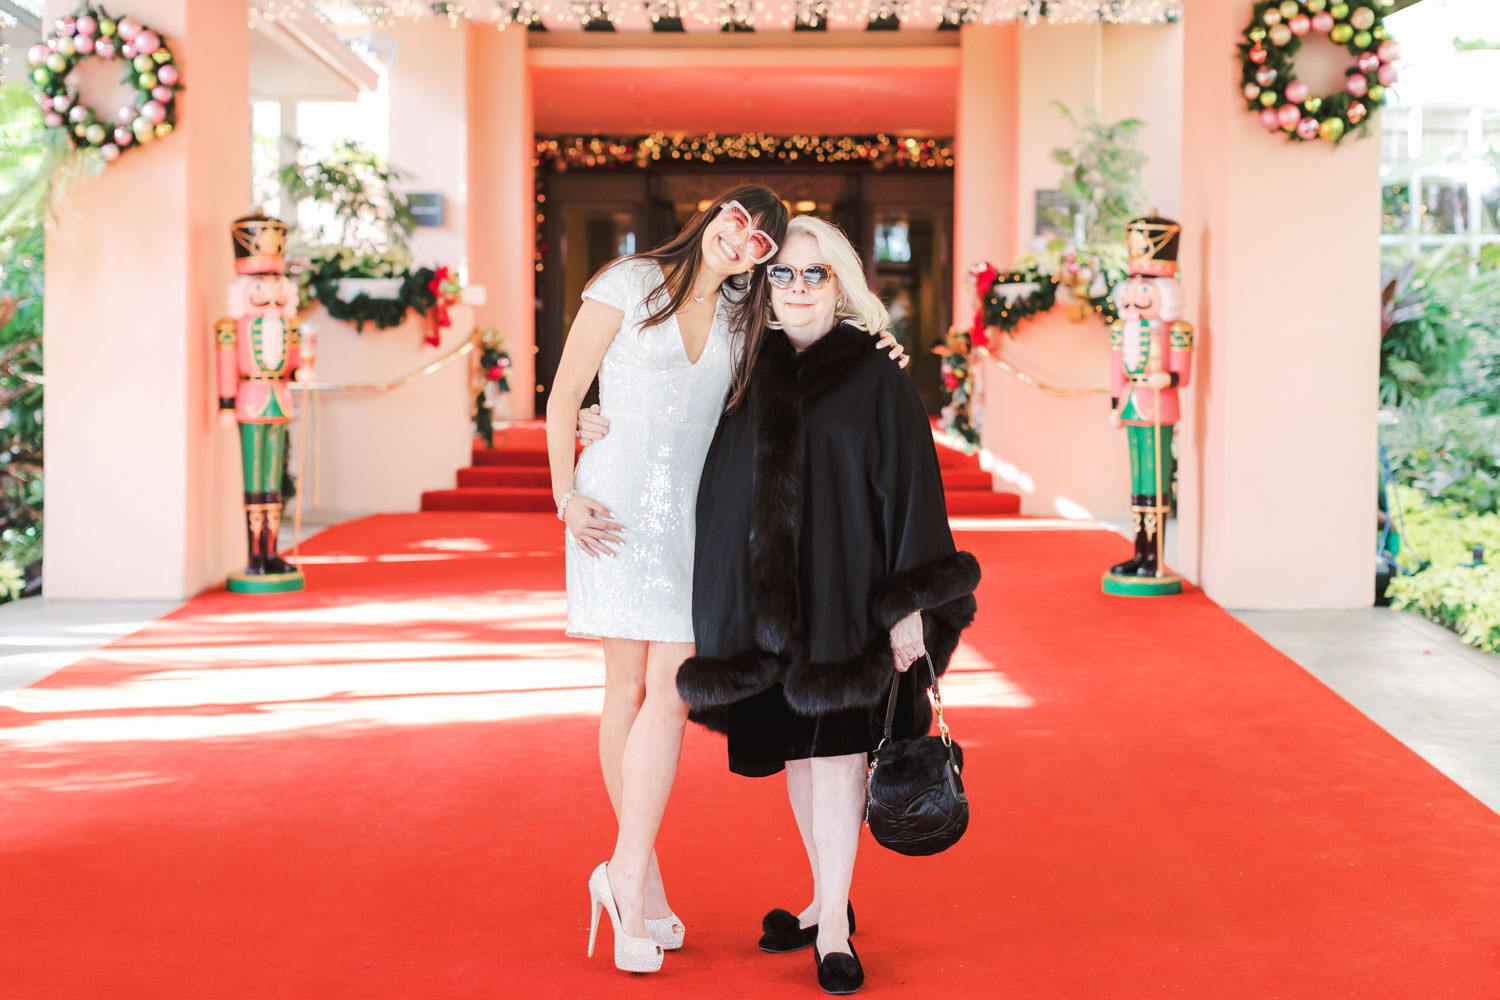 Bride with mother at Chic Beverly Hills Hotel Bridal Shower during Christmas decorations, Cavin Elizabeth Photography